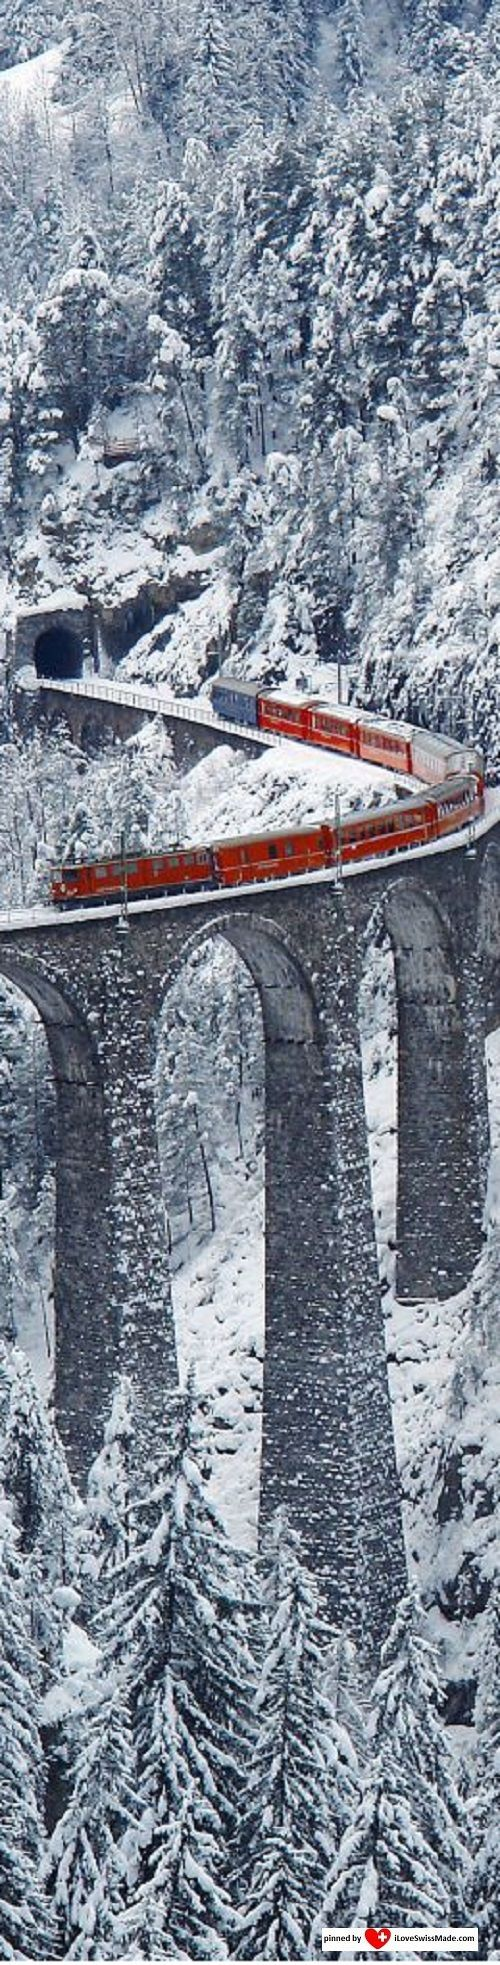 Landwasser Viaduct, Graubunden, #Switzerland - amazing!